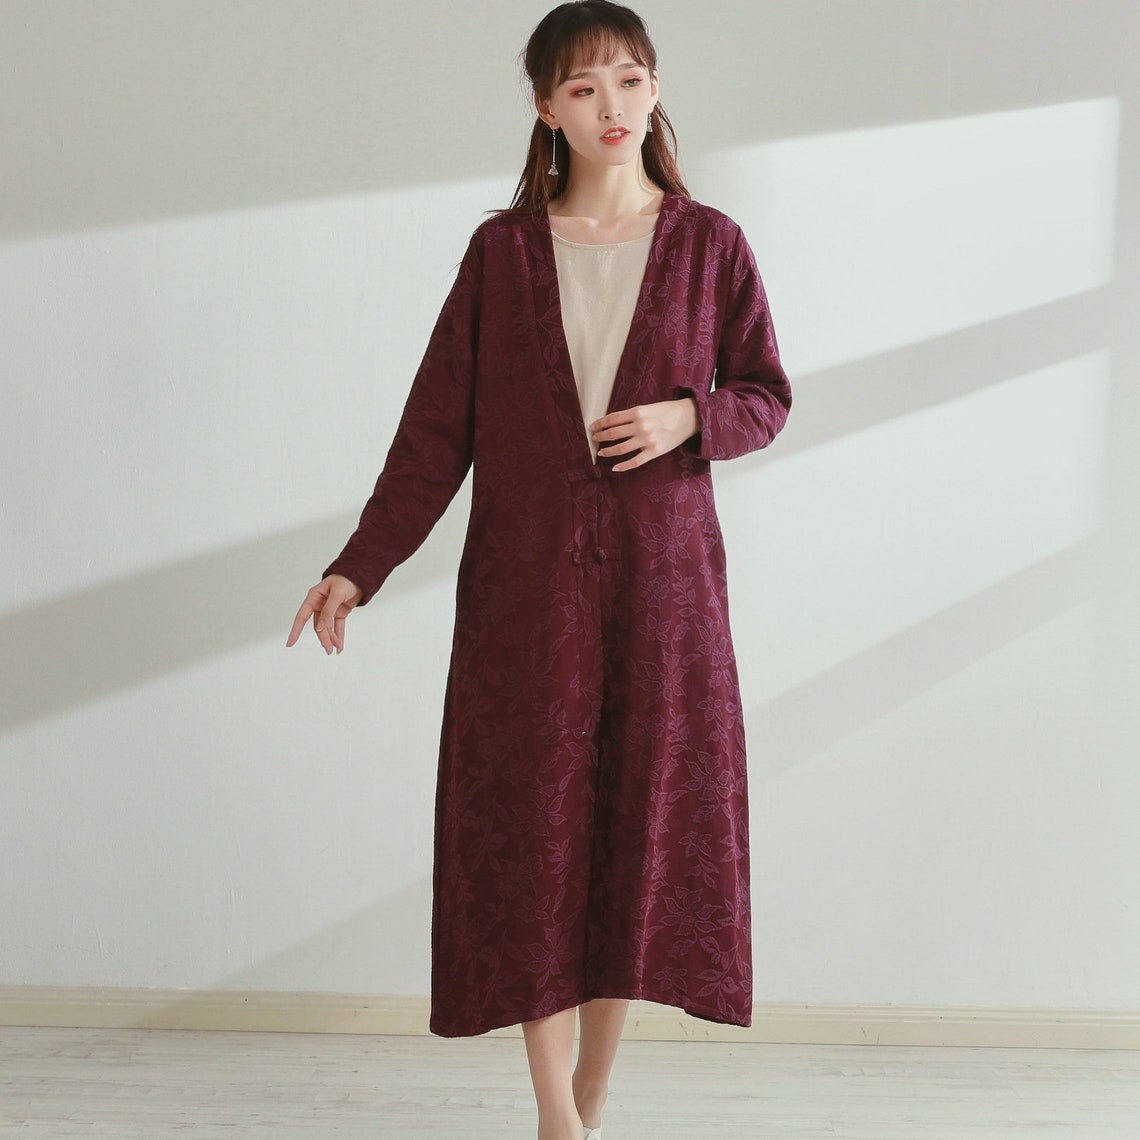 1920s Coats, Furs, Jackets and Capes History New Design Thick Jacquard Cotton Cardigan Coat Long Sleeves Shirt Casaul Loose Midi Dresses Coat Customized Plus Size Clothing Duster Linen $79.38 AT vintagedancer.com